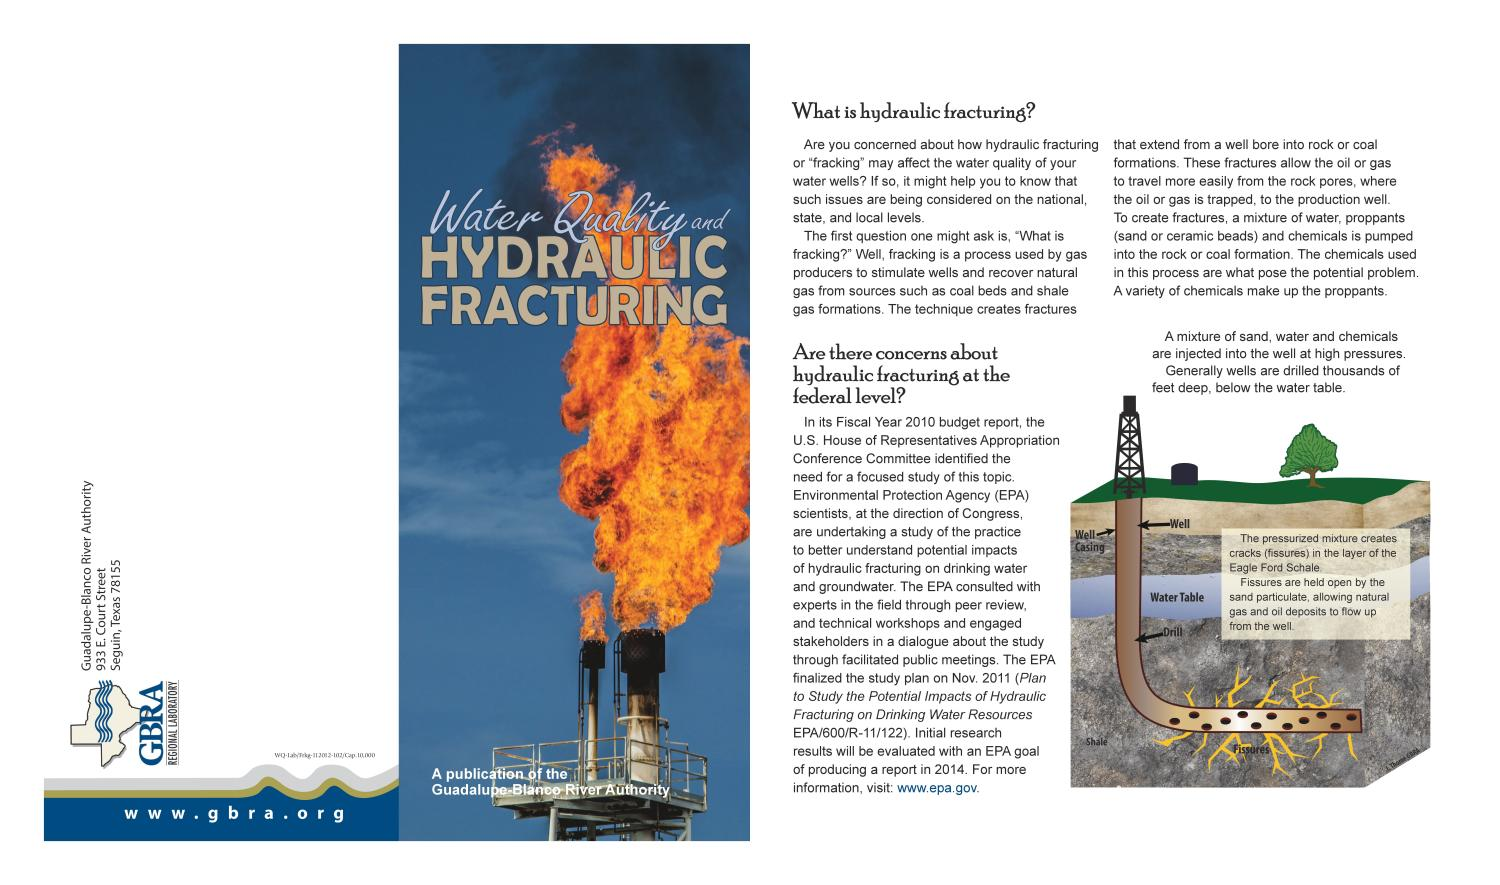 hydraulic fracturing and its concern today